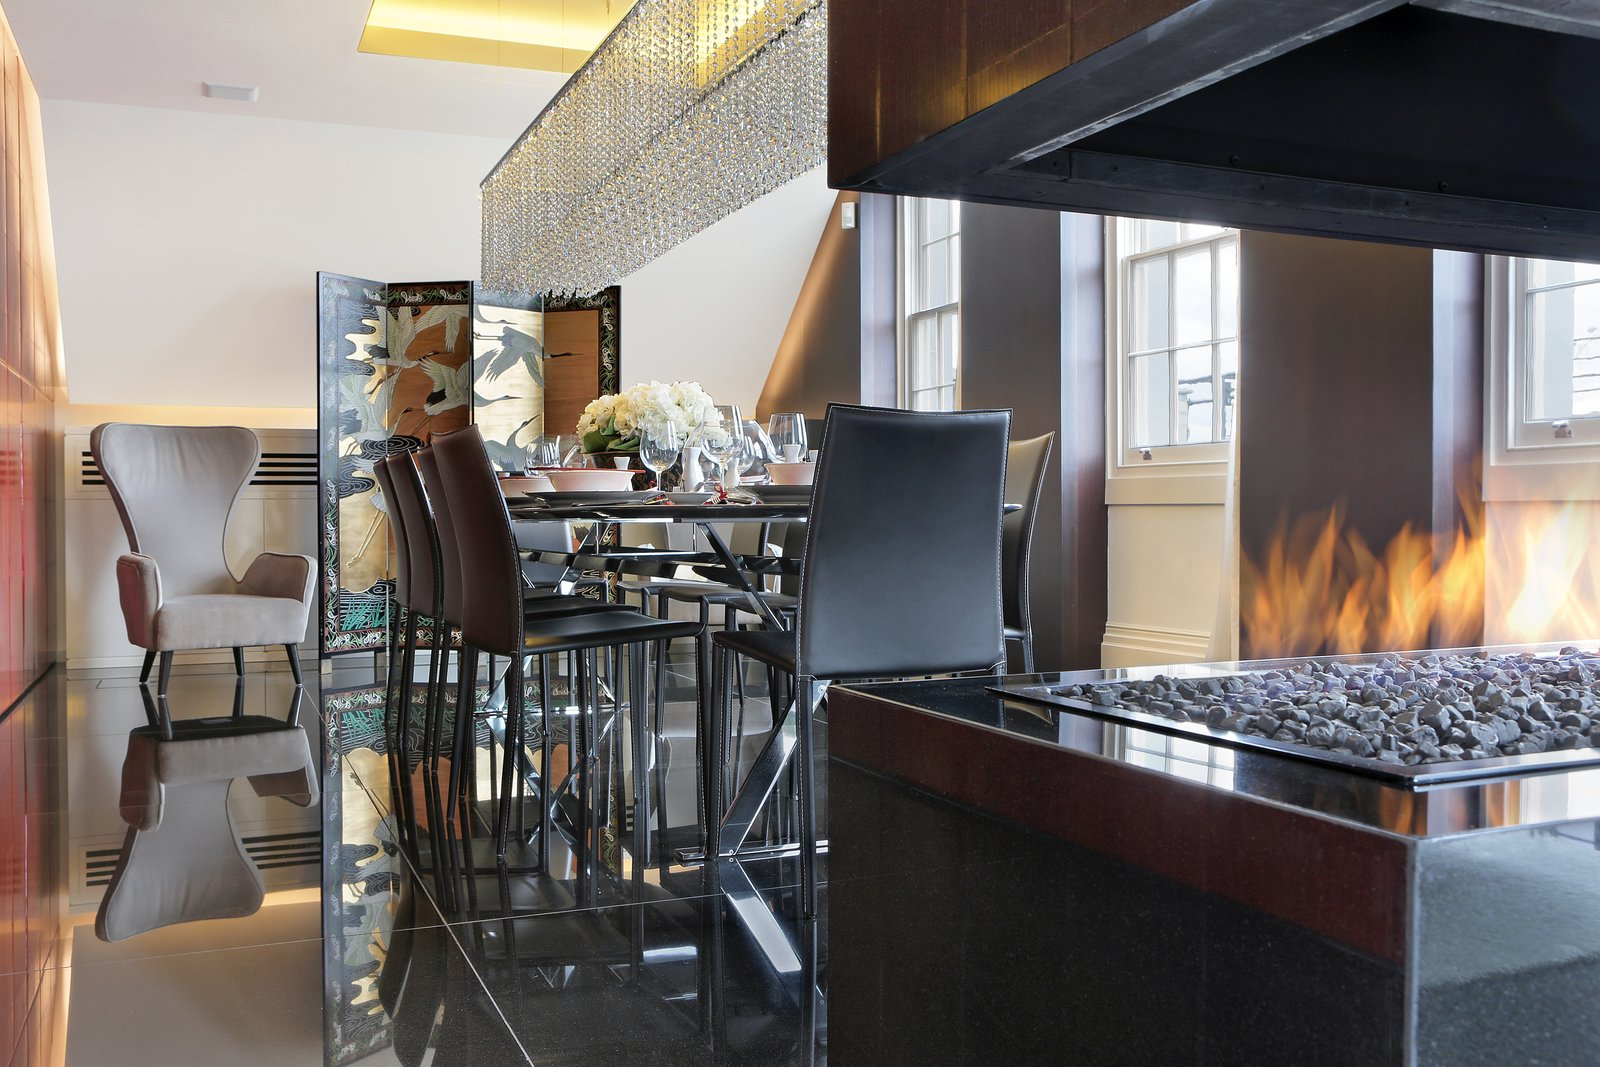 Overlooking London's St. James's Park, the penthouse of the Carlton House Terrace features 24-hour security and a private entrance with a concierge desk. Elevator access leads you to this renovated residence where the open stacked fireplace takes command of the dining room.  97+ Modern Fireplace Ideas from Proof That a Modern Fireplace Can Be the Defining Factor of a Space